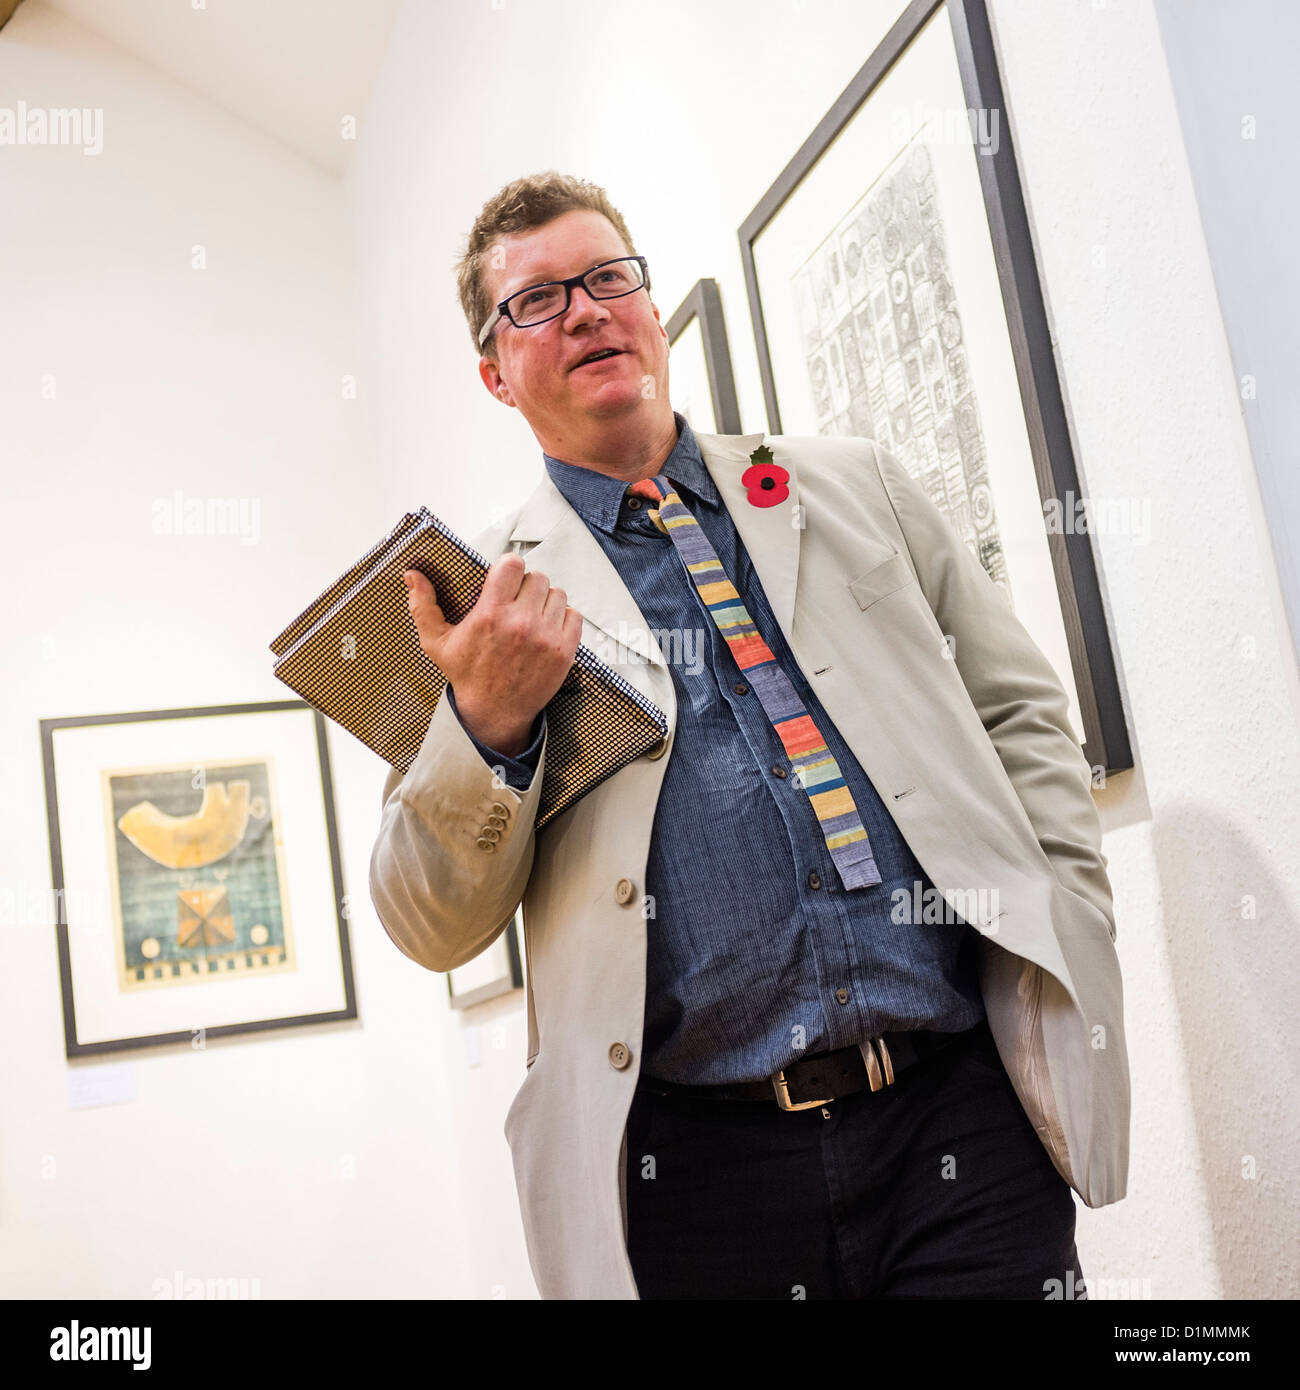 """Printemaker PAUL CROFT at the opening of """"30 Years of Drawings and Prints"""", Museum of Modern Art (MoMA) Wales, Machynlleth Stock Photo"""